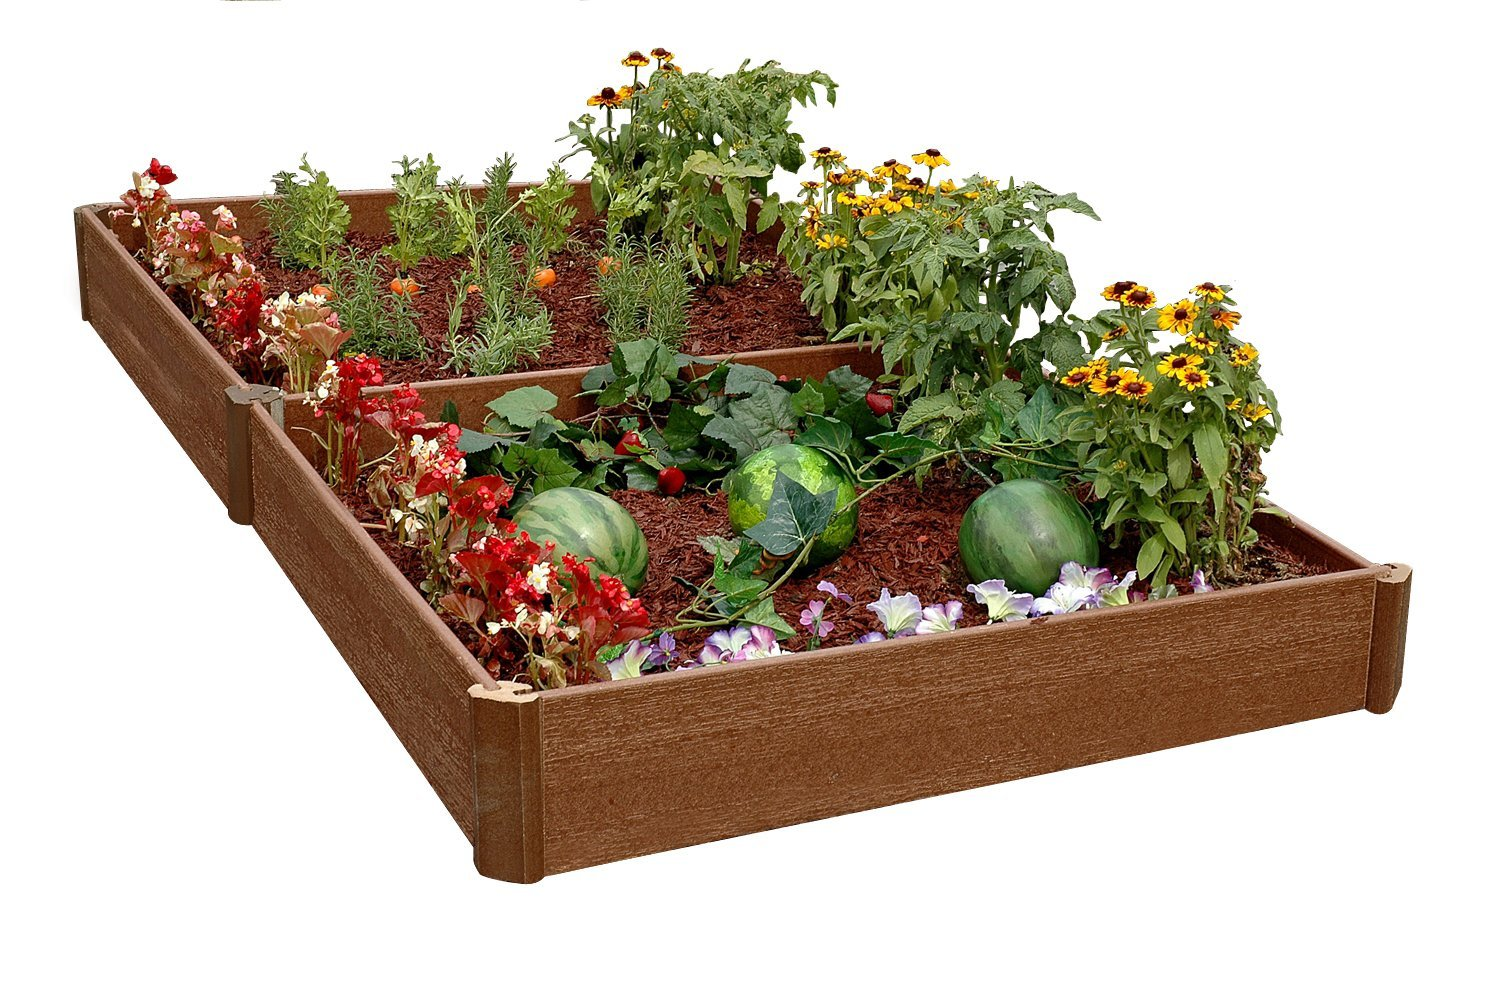 Greenes Cedar Raised Garden Kit